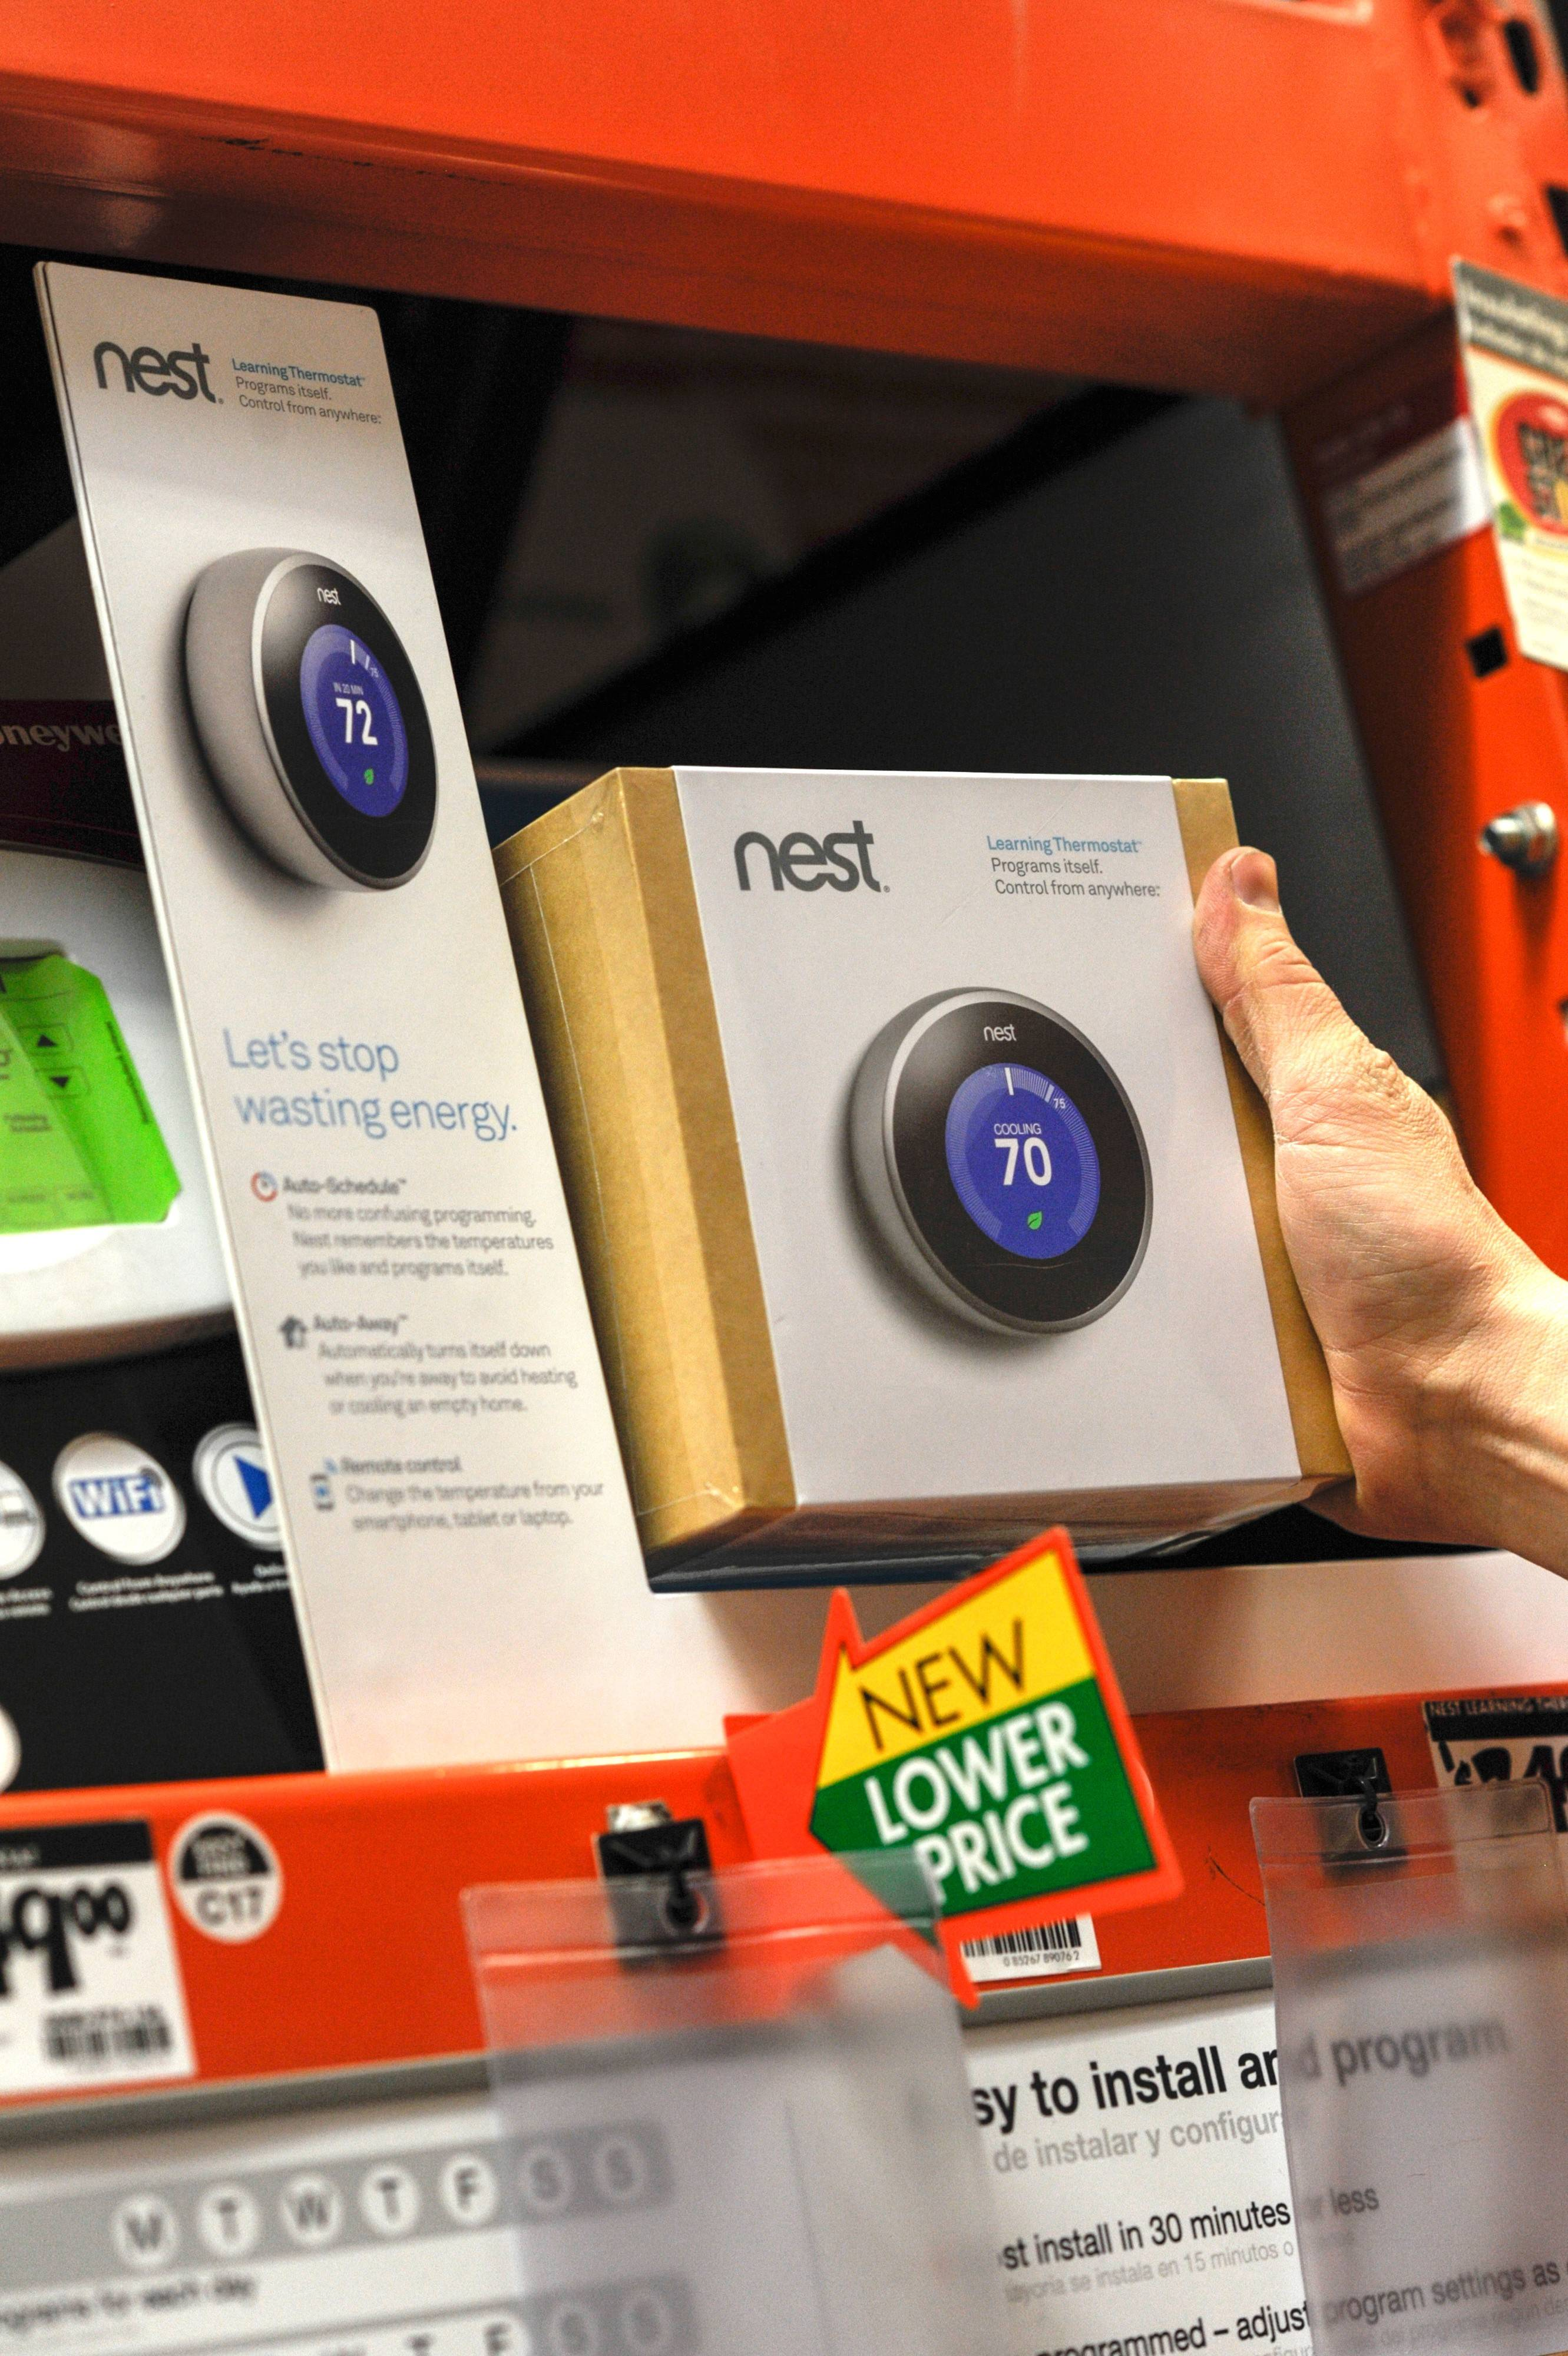 Large chains such as Home Depot and Lowe's are selling virtual tools -- sensors, Wi-Fi enabled appliances and software -- to help those customers monitor and control their homes from their smartphones.